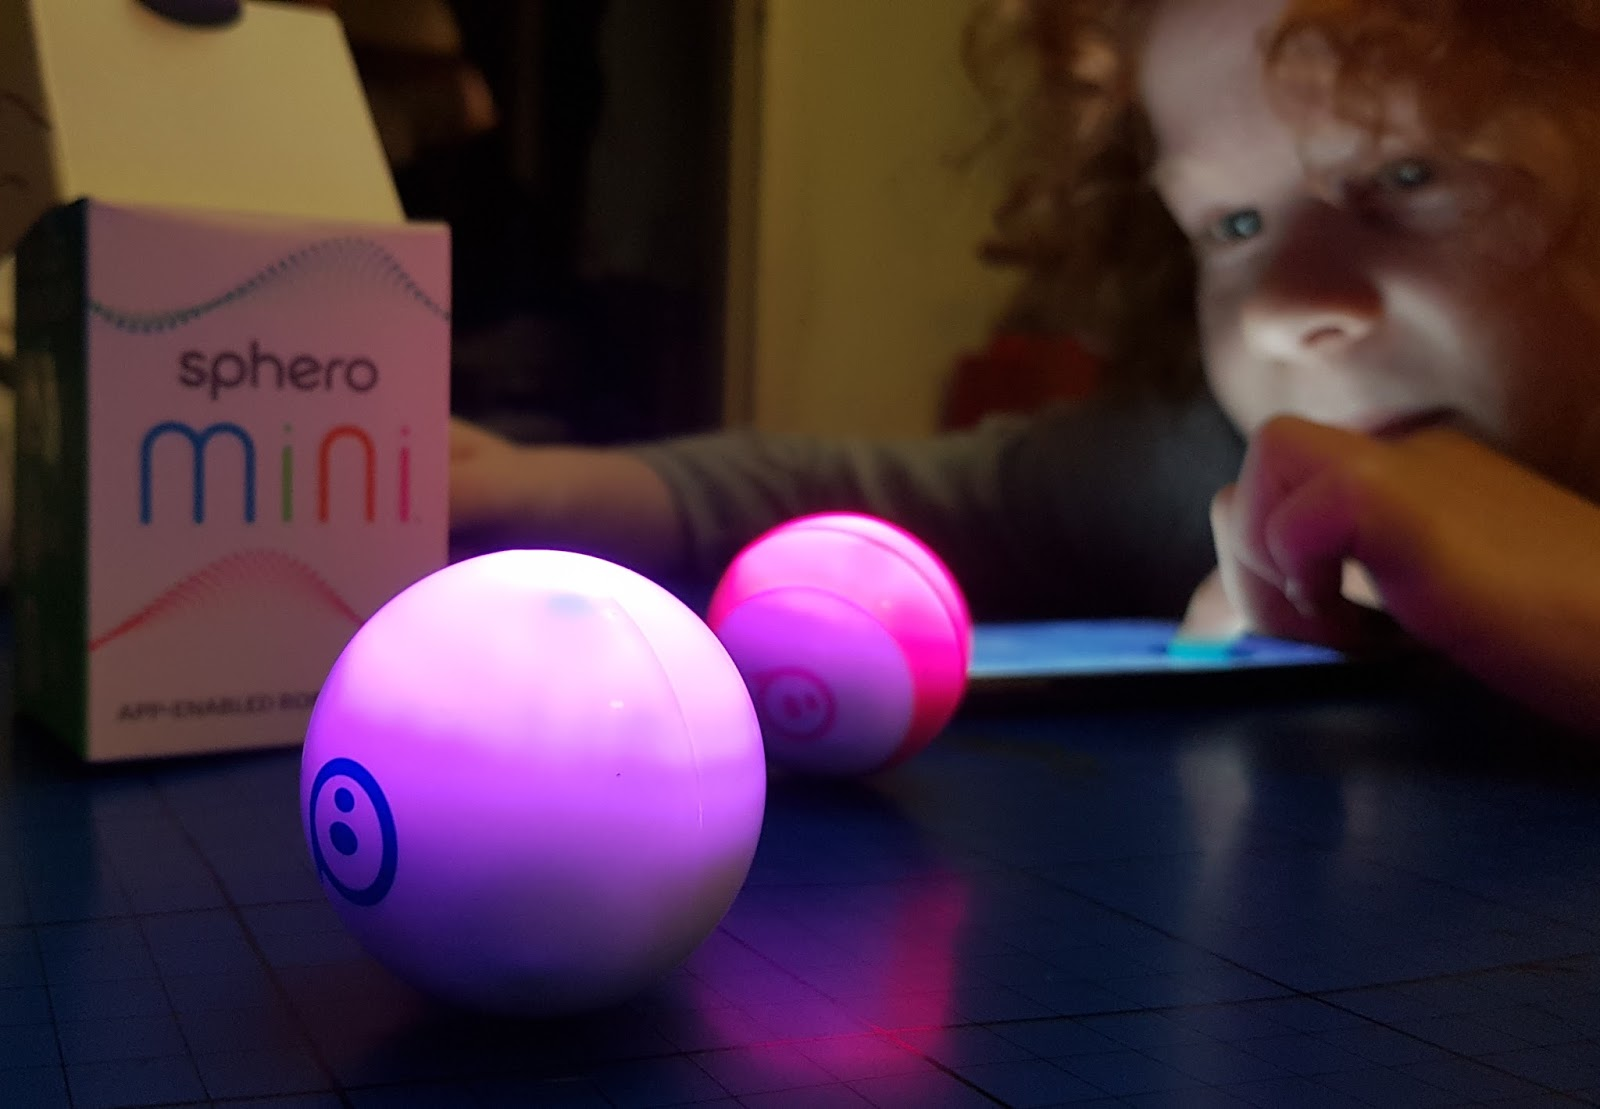 The Brick Castle: Sphero Mini - the awesome App-Enabled